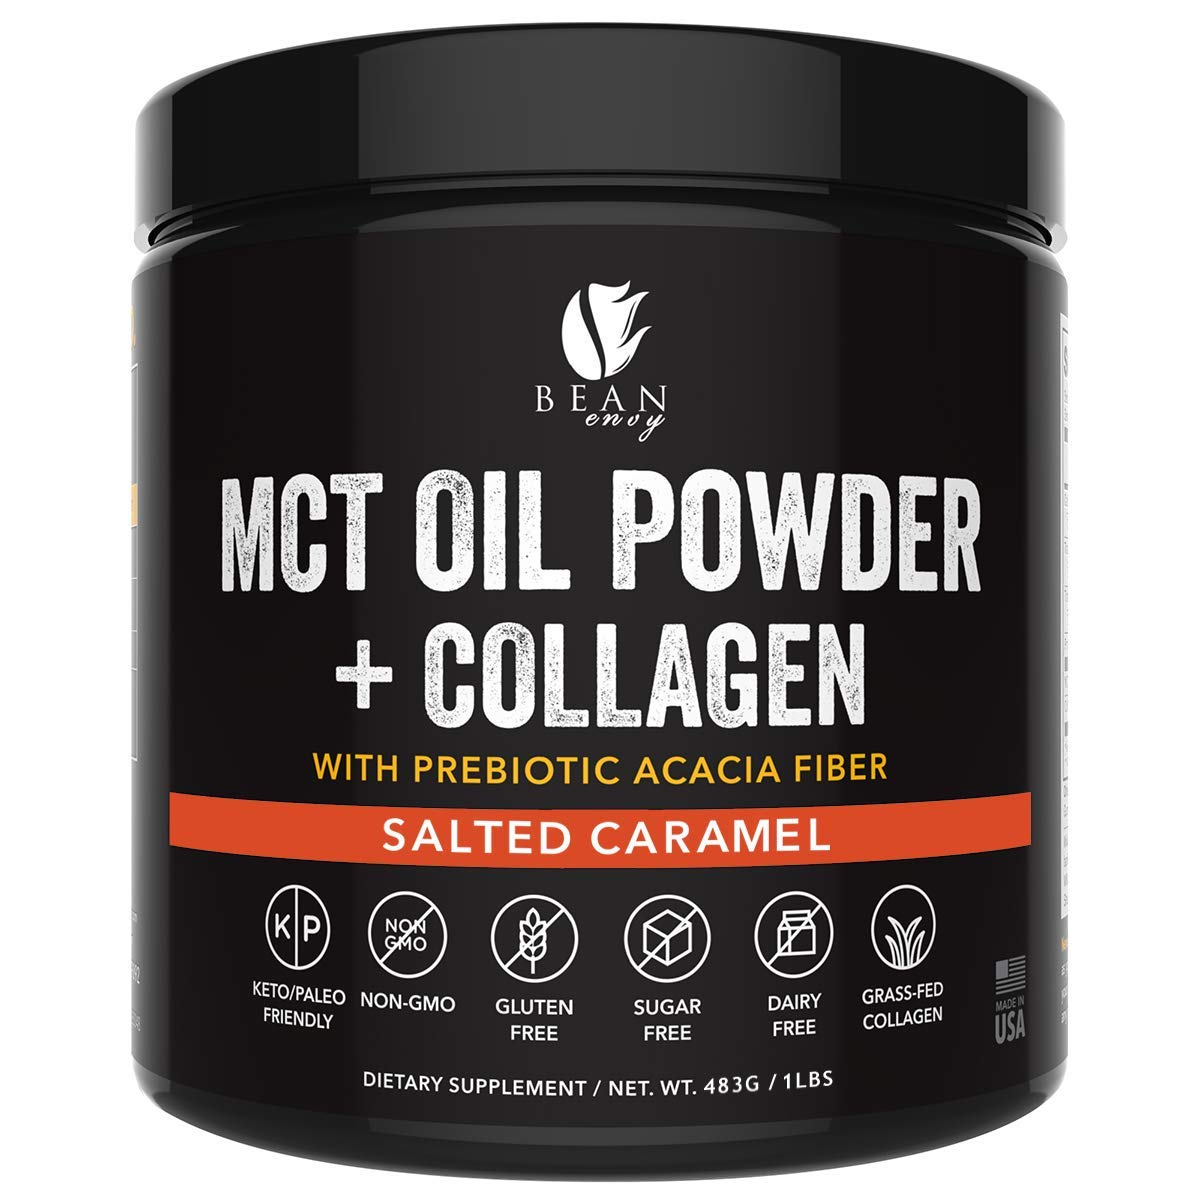 MCT Oil Powder + Collagen + Prebiotic Acacia Fiber - 100% Pure MCT's - Perfect for Keto - Energy Boost - Appetite Control - Healthy Gut Support - Salted Caramel by Bean Envy